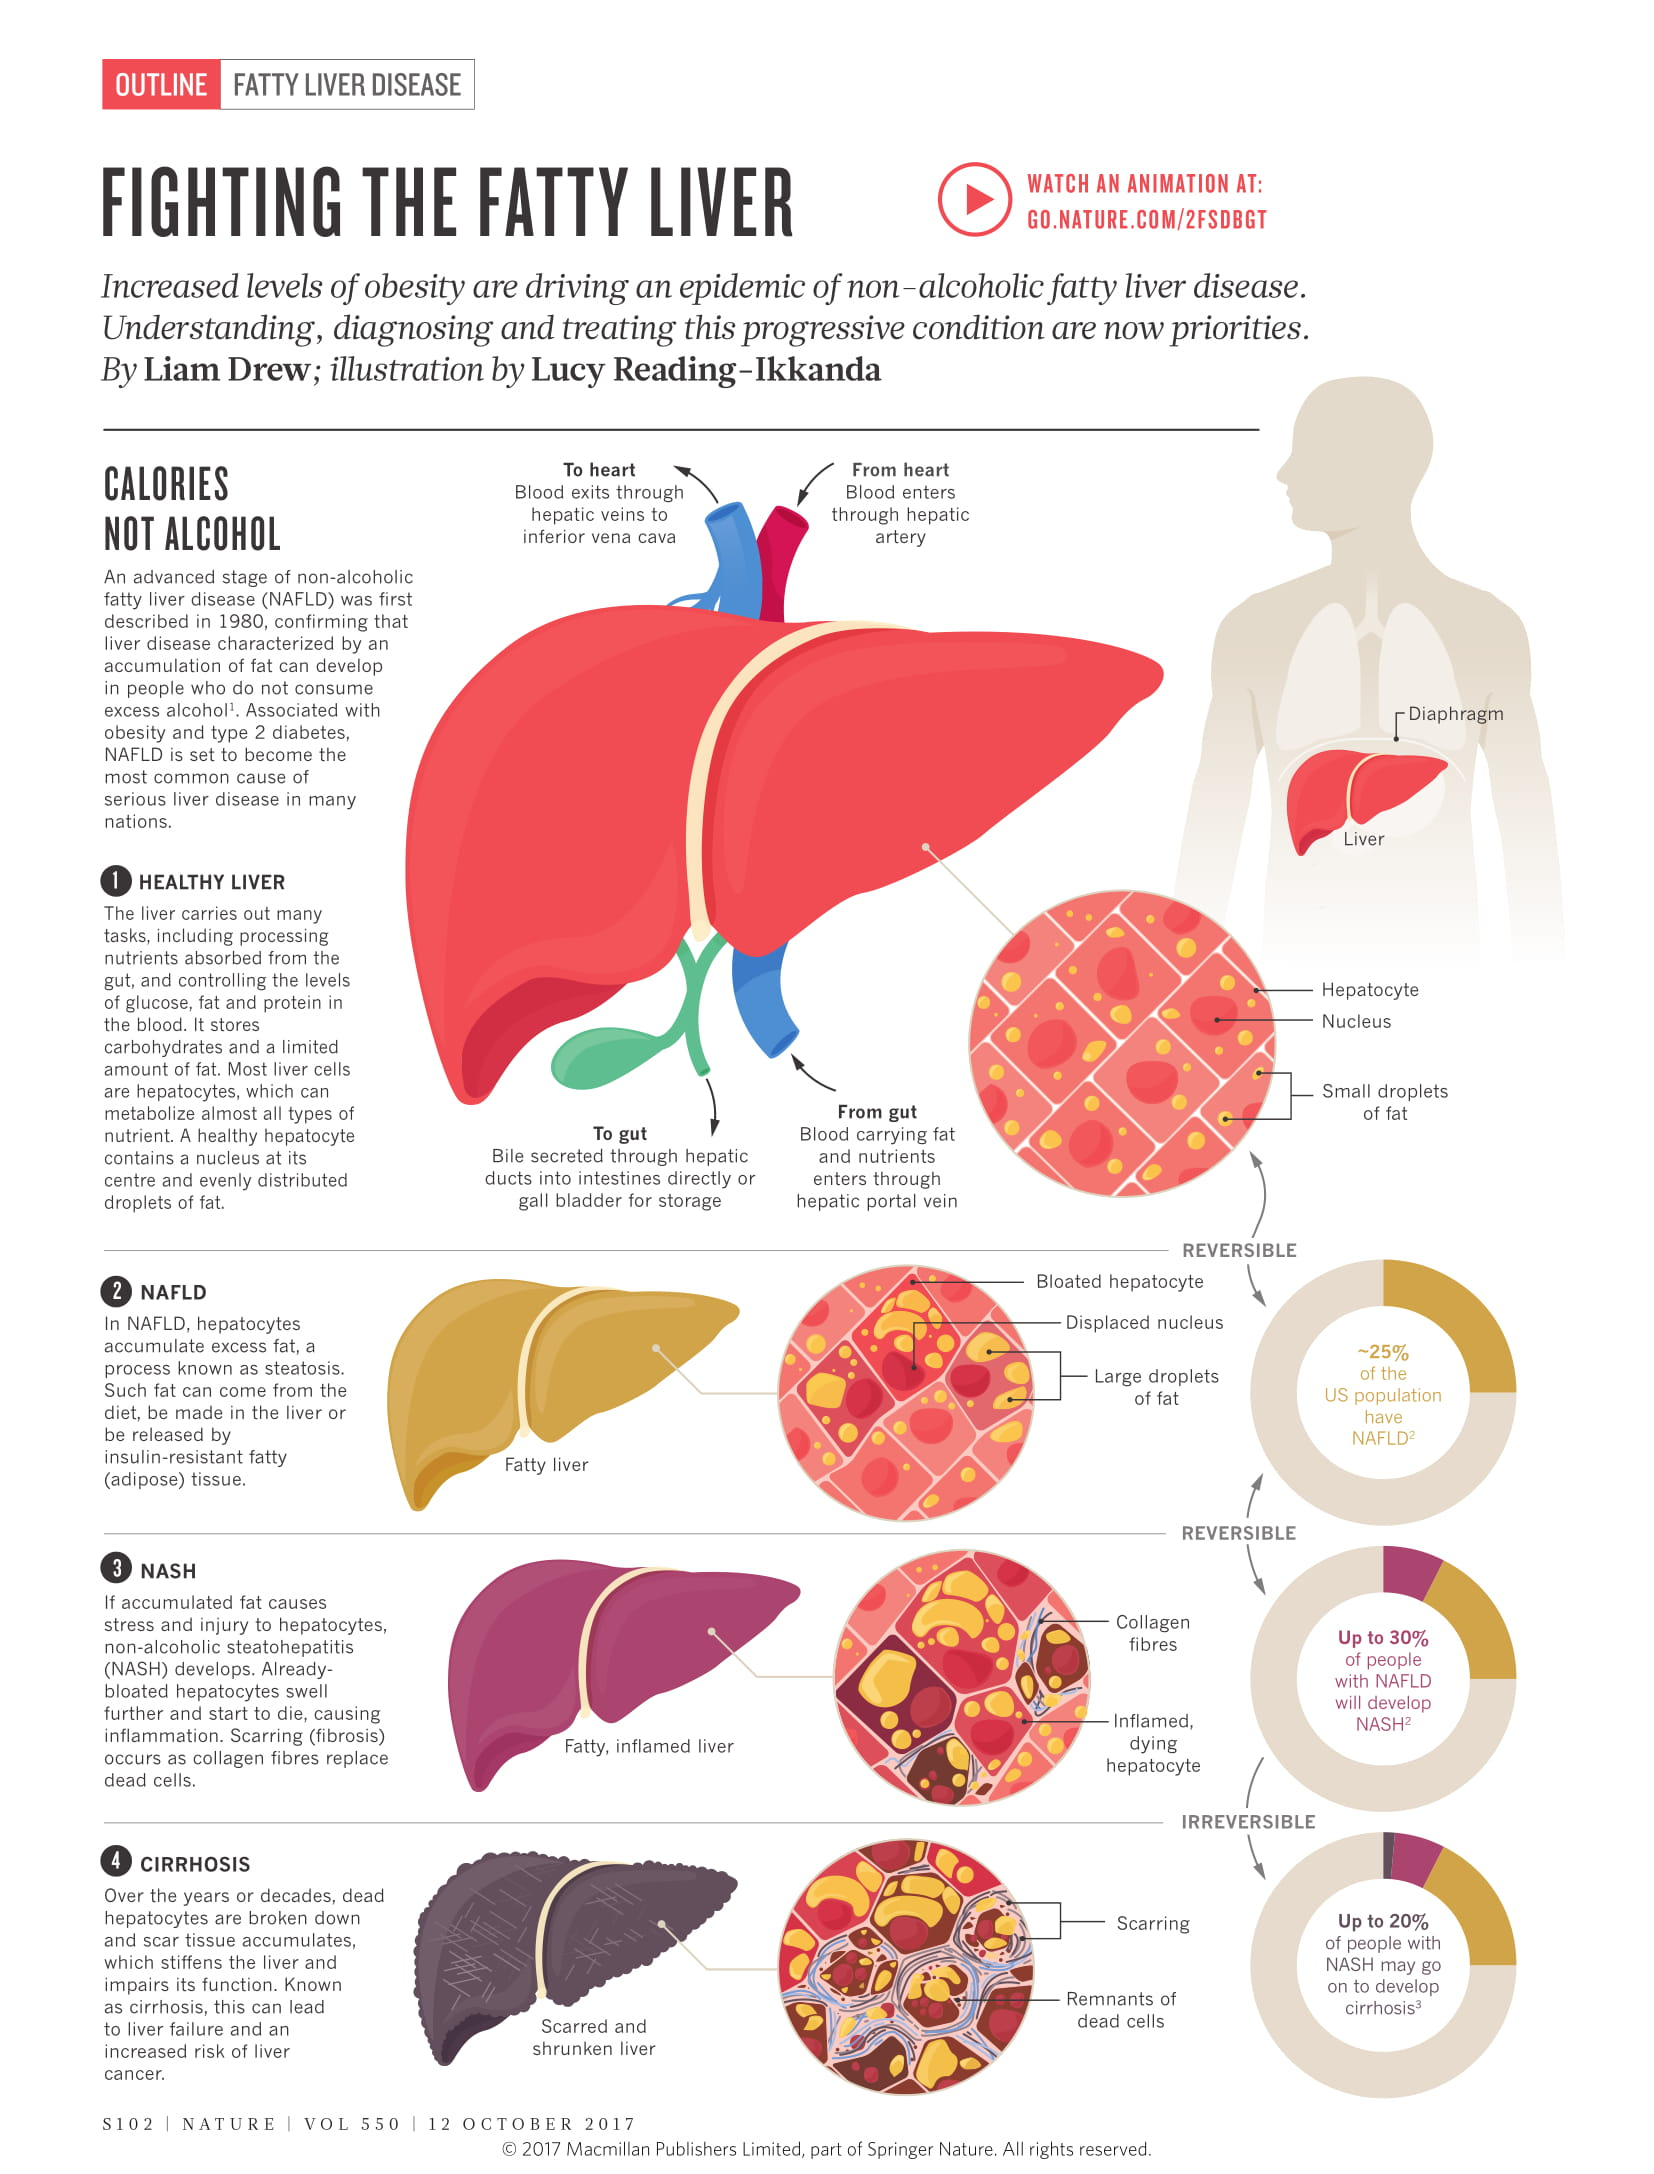 Understanding Fatty Liver Disease and Its Treatment Protocol - Infographic